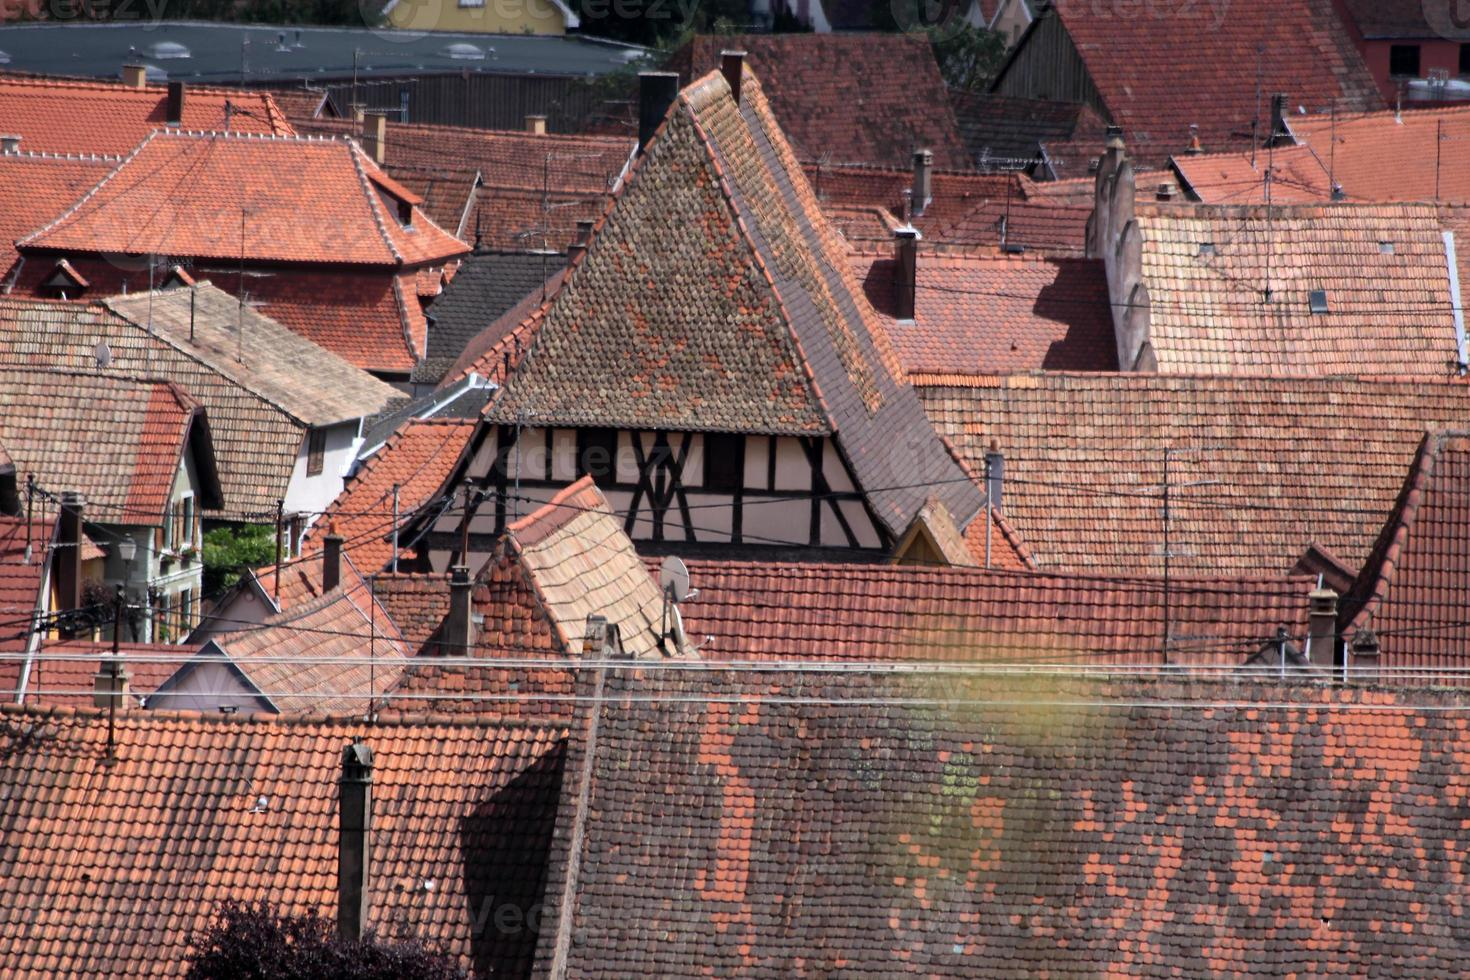 Village with red tiled roofs photo